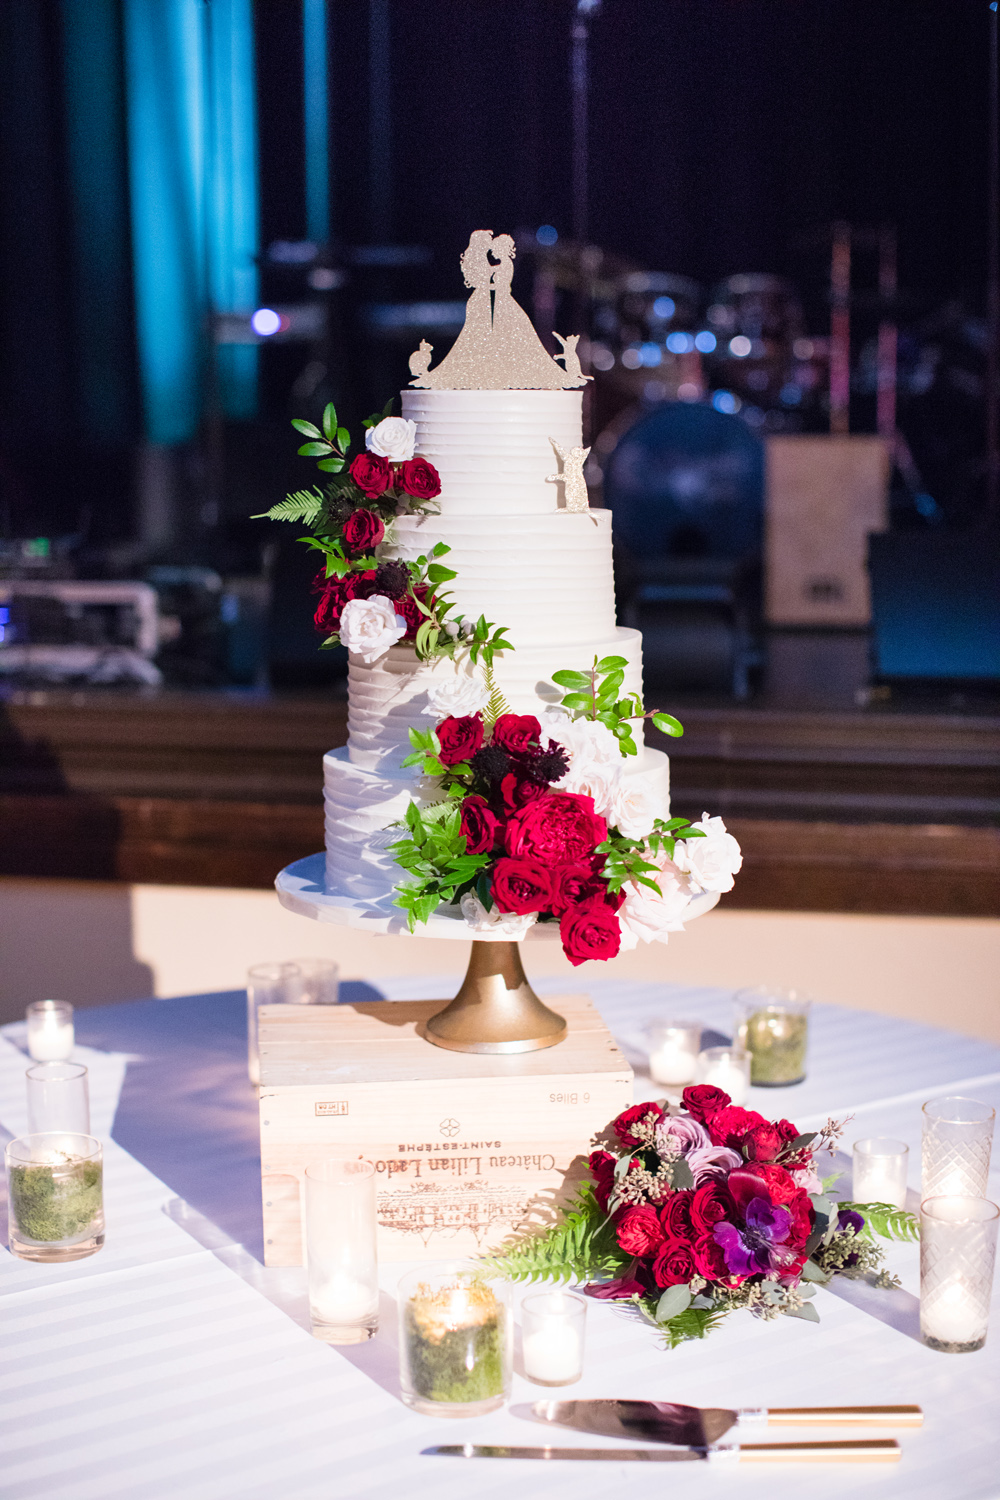 same-sex wedding cake, fresh flowers, red roses and ferns on four-tier wedding cake